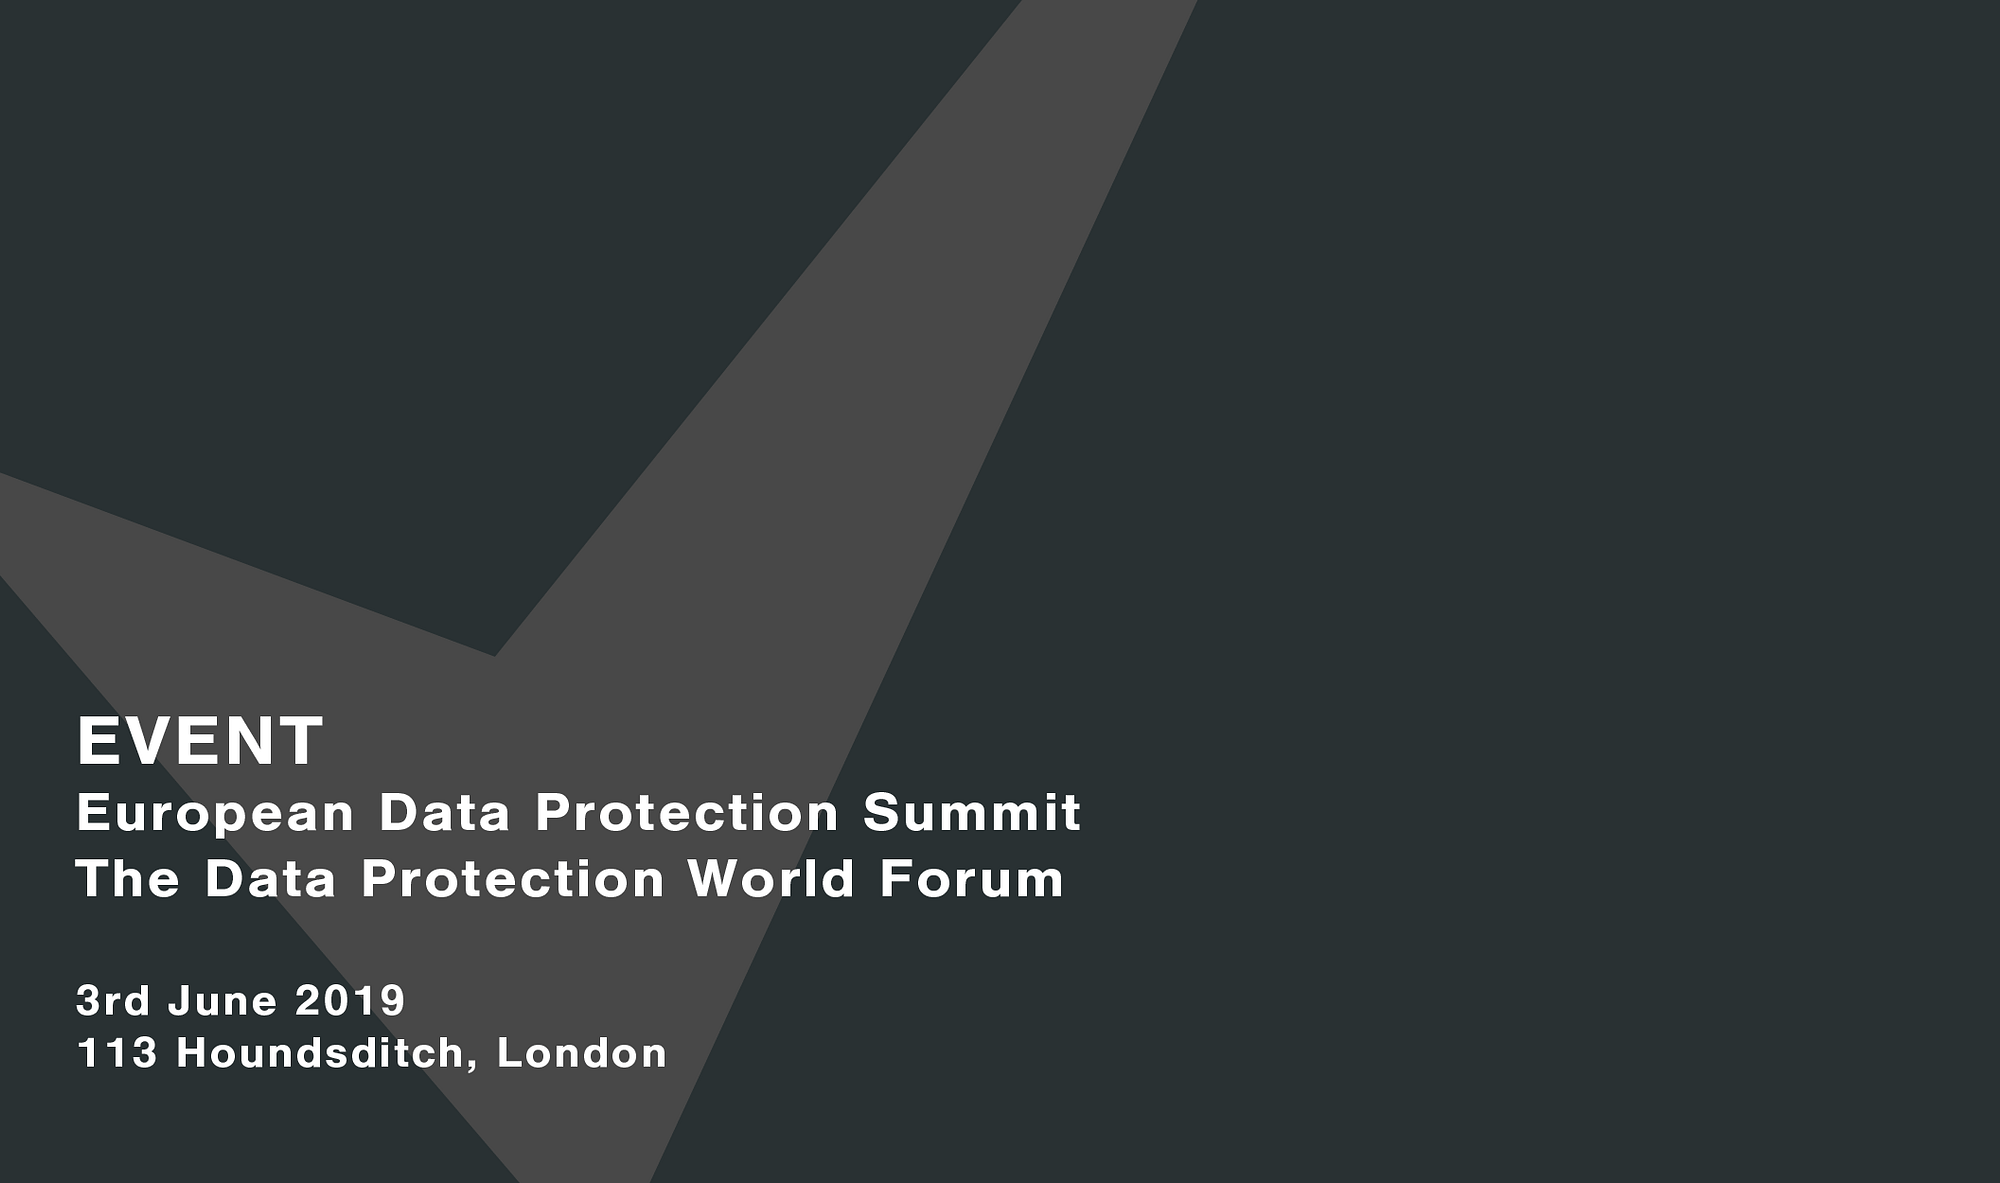 Event_European-Data-Protection-Summit